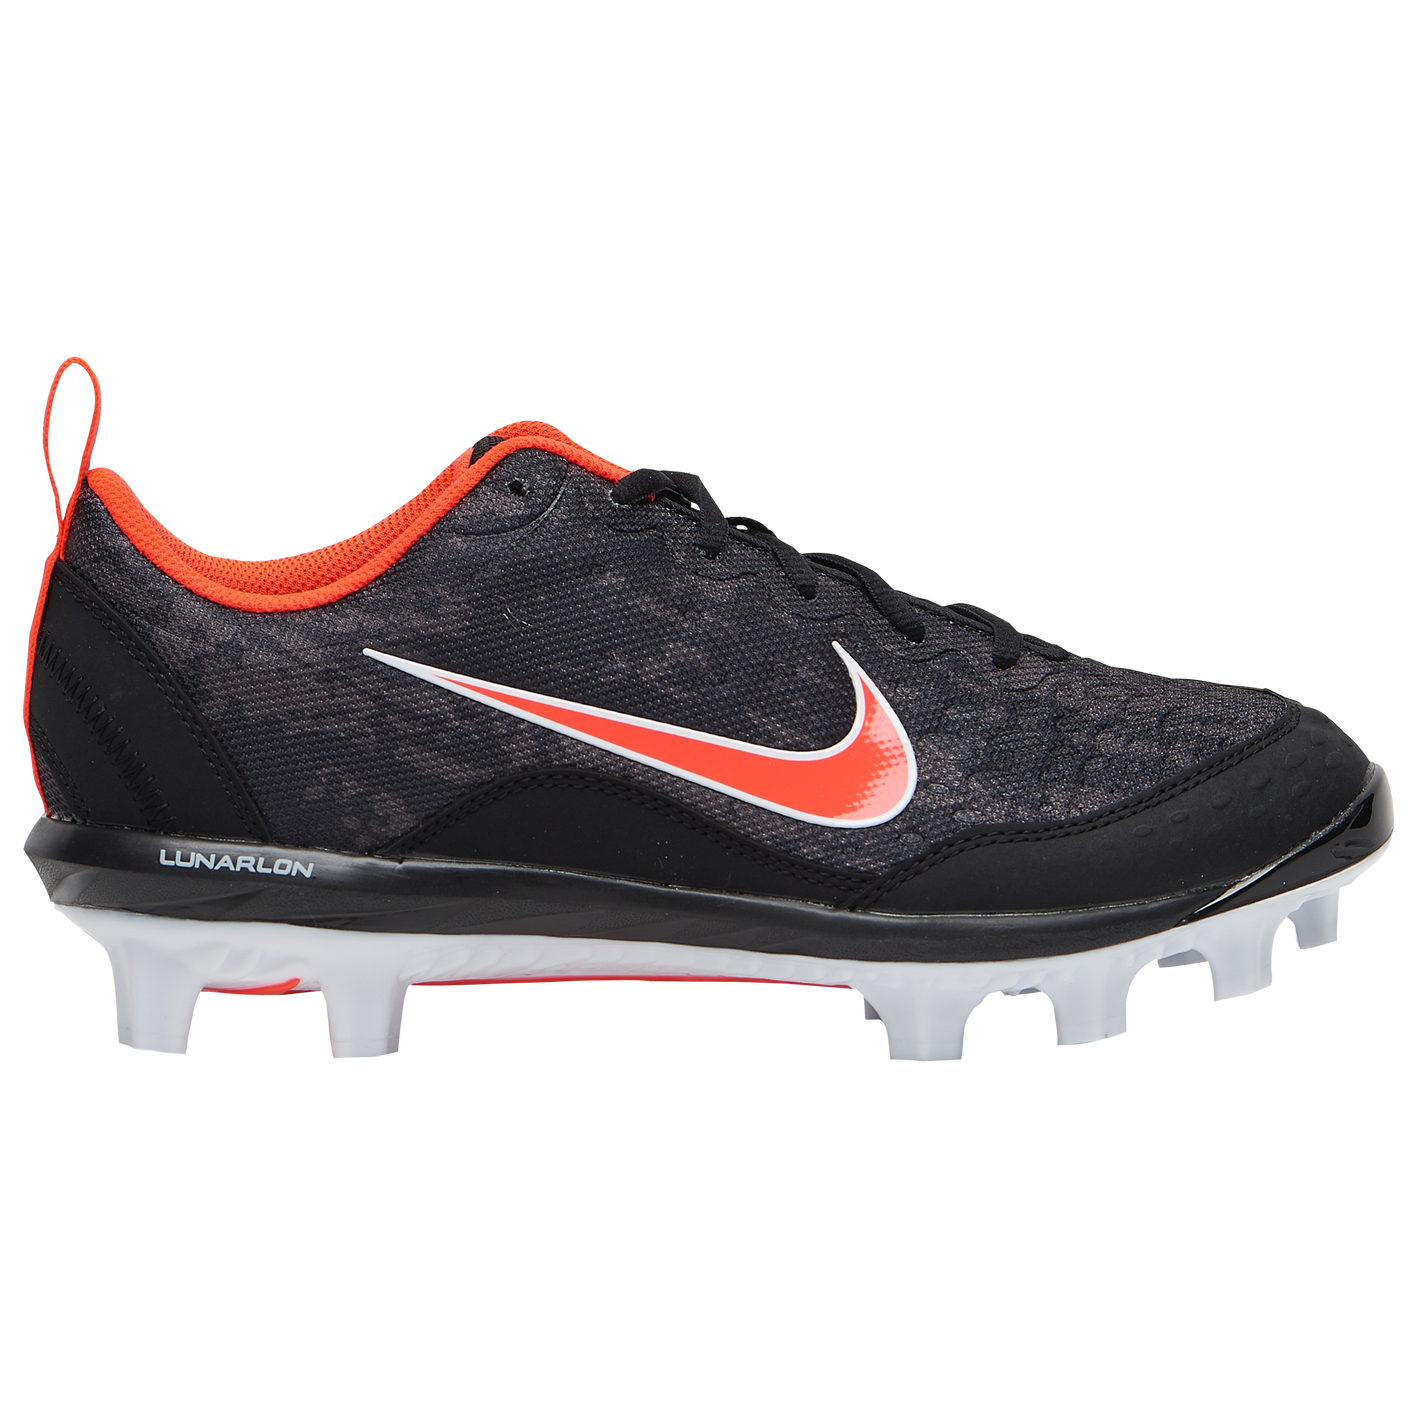 2ed802f76a7 Nike Hyperdiamond 2 Pro MCS - Women s - Softball - Shoes - Black ...